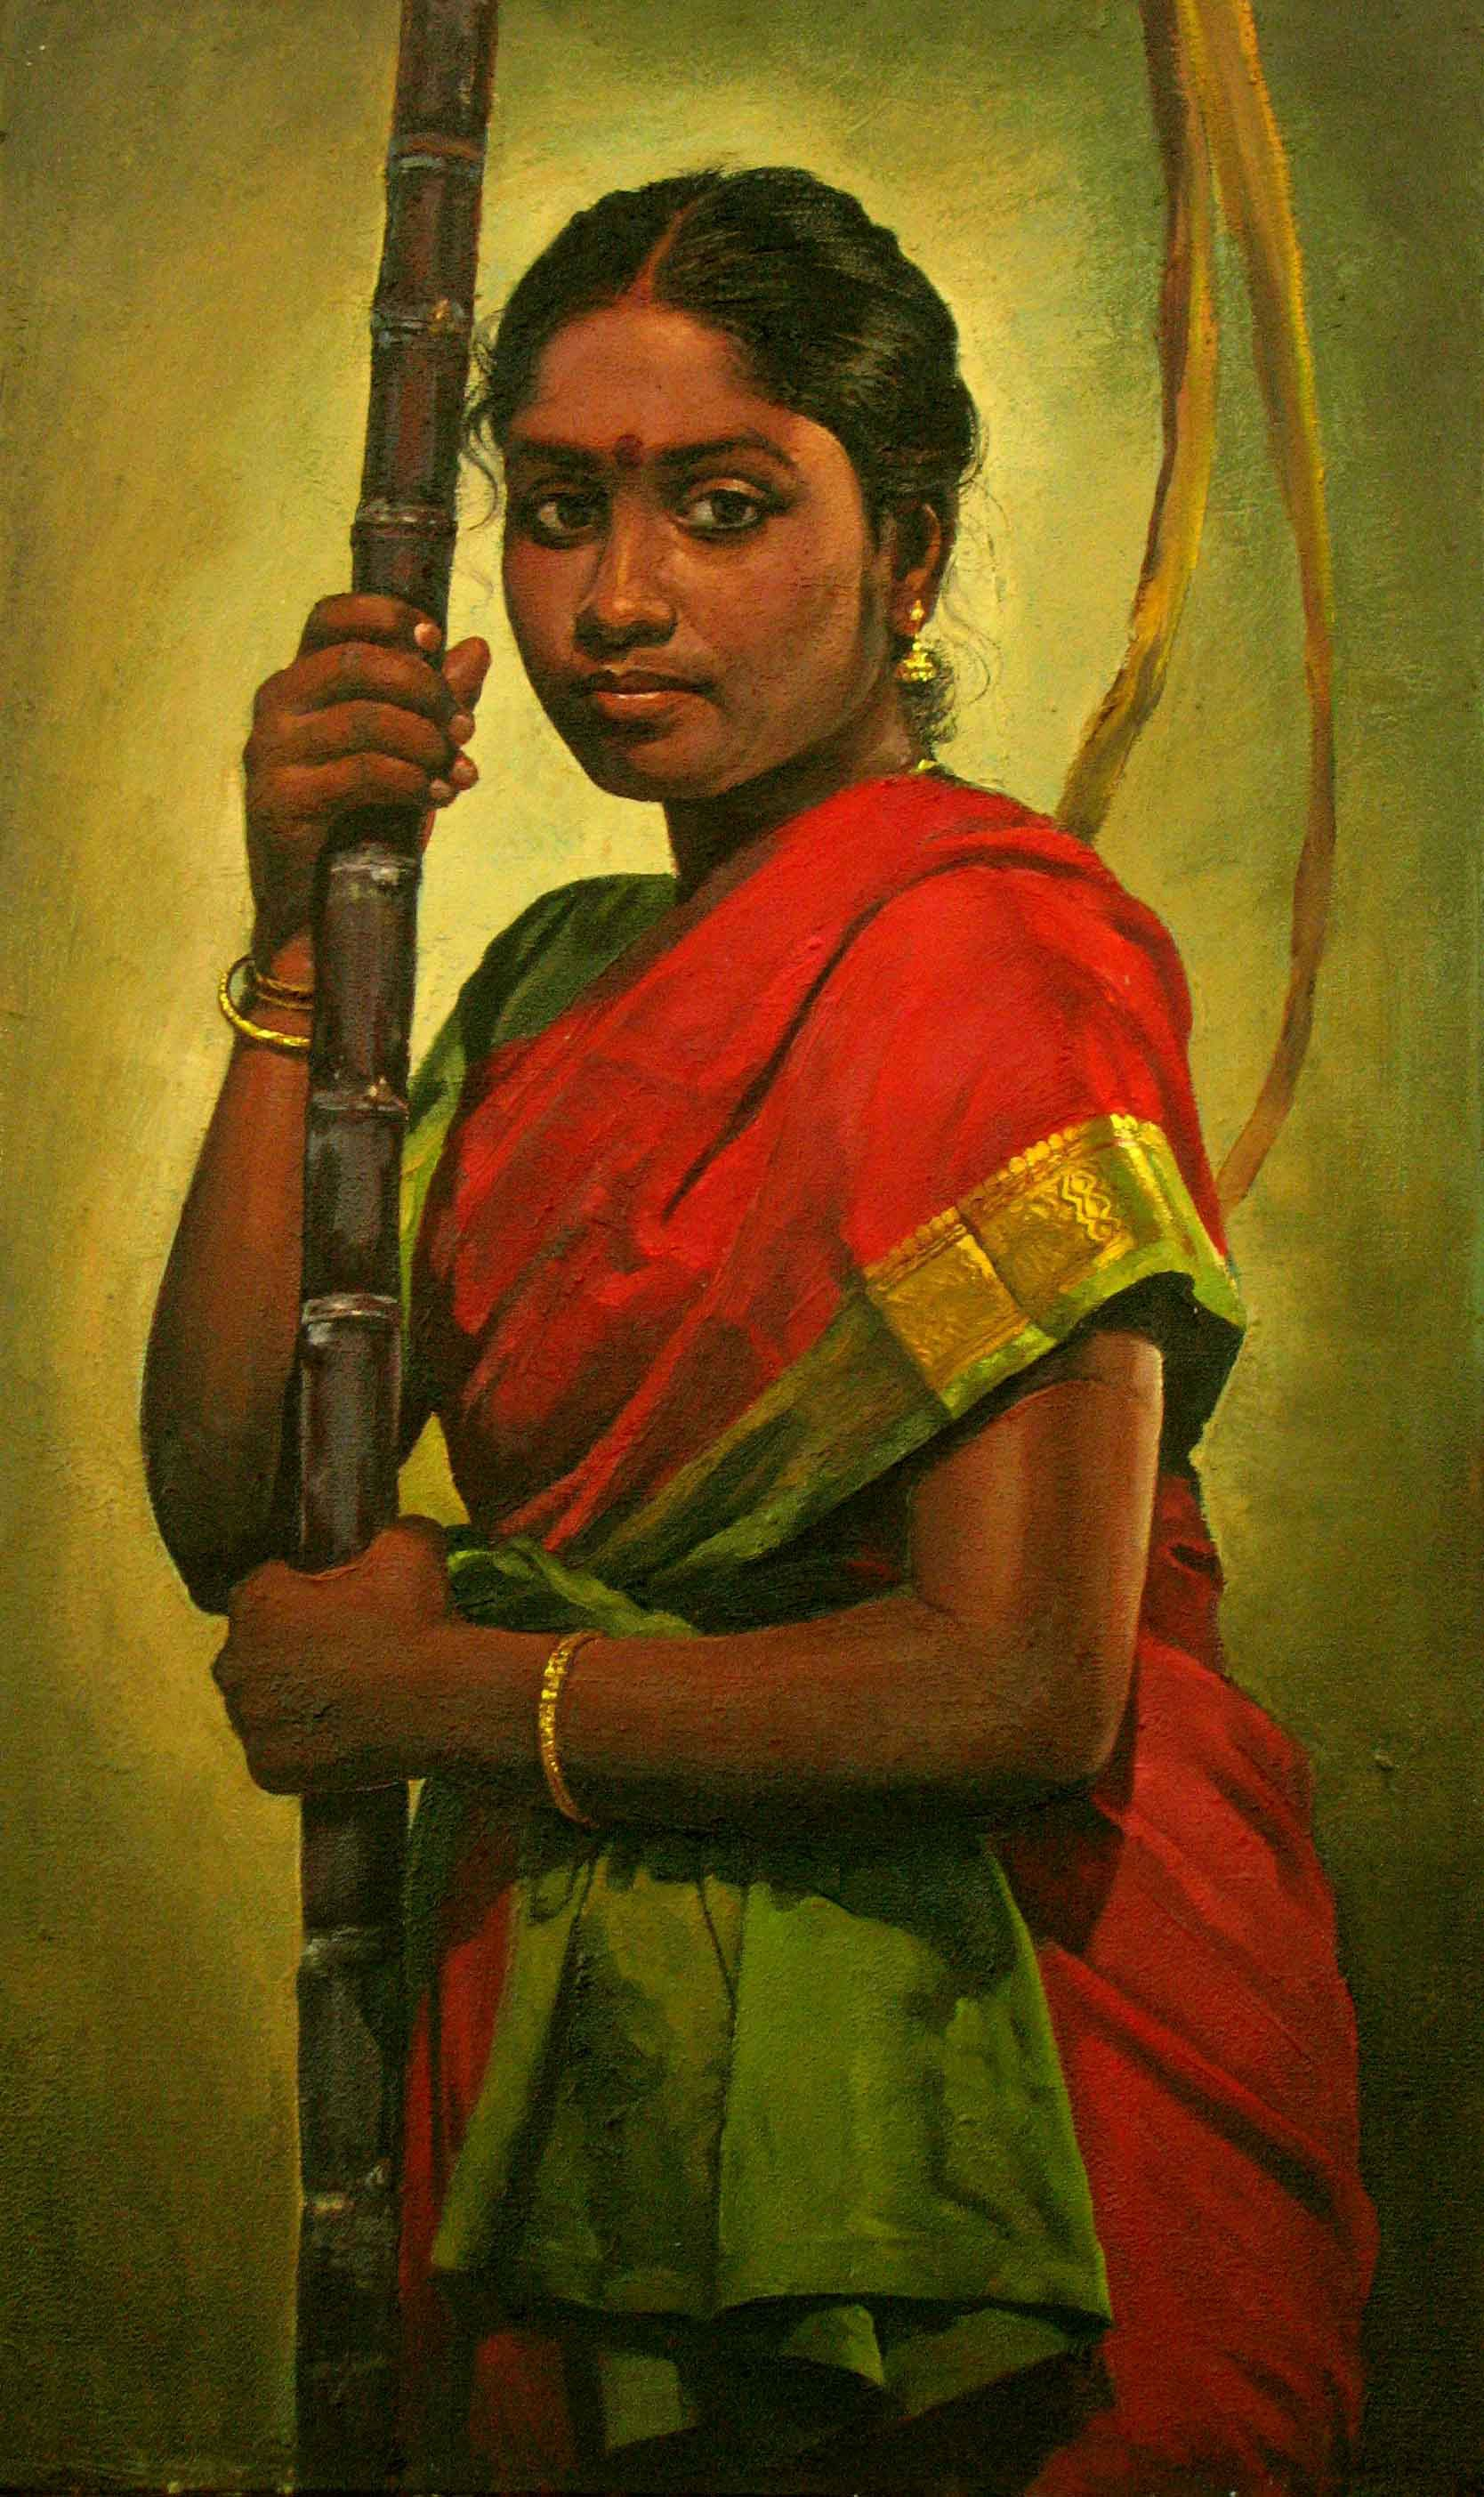 Tamil Girl With Sugarcane For Festival Painting By S Elayaraja Www Elayarajaartgallery Com India Art Indian Paintings Indian Women Painting